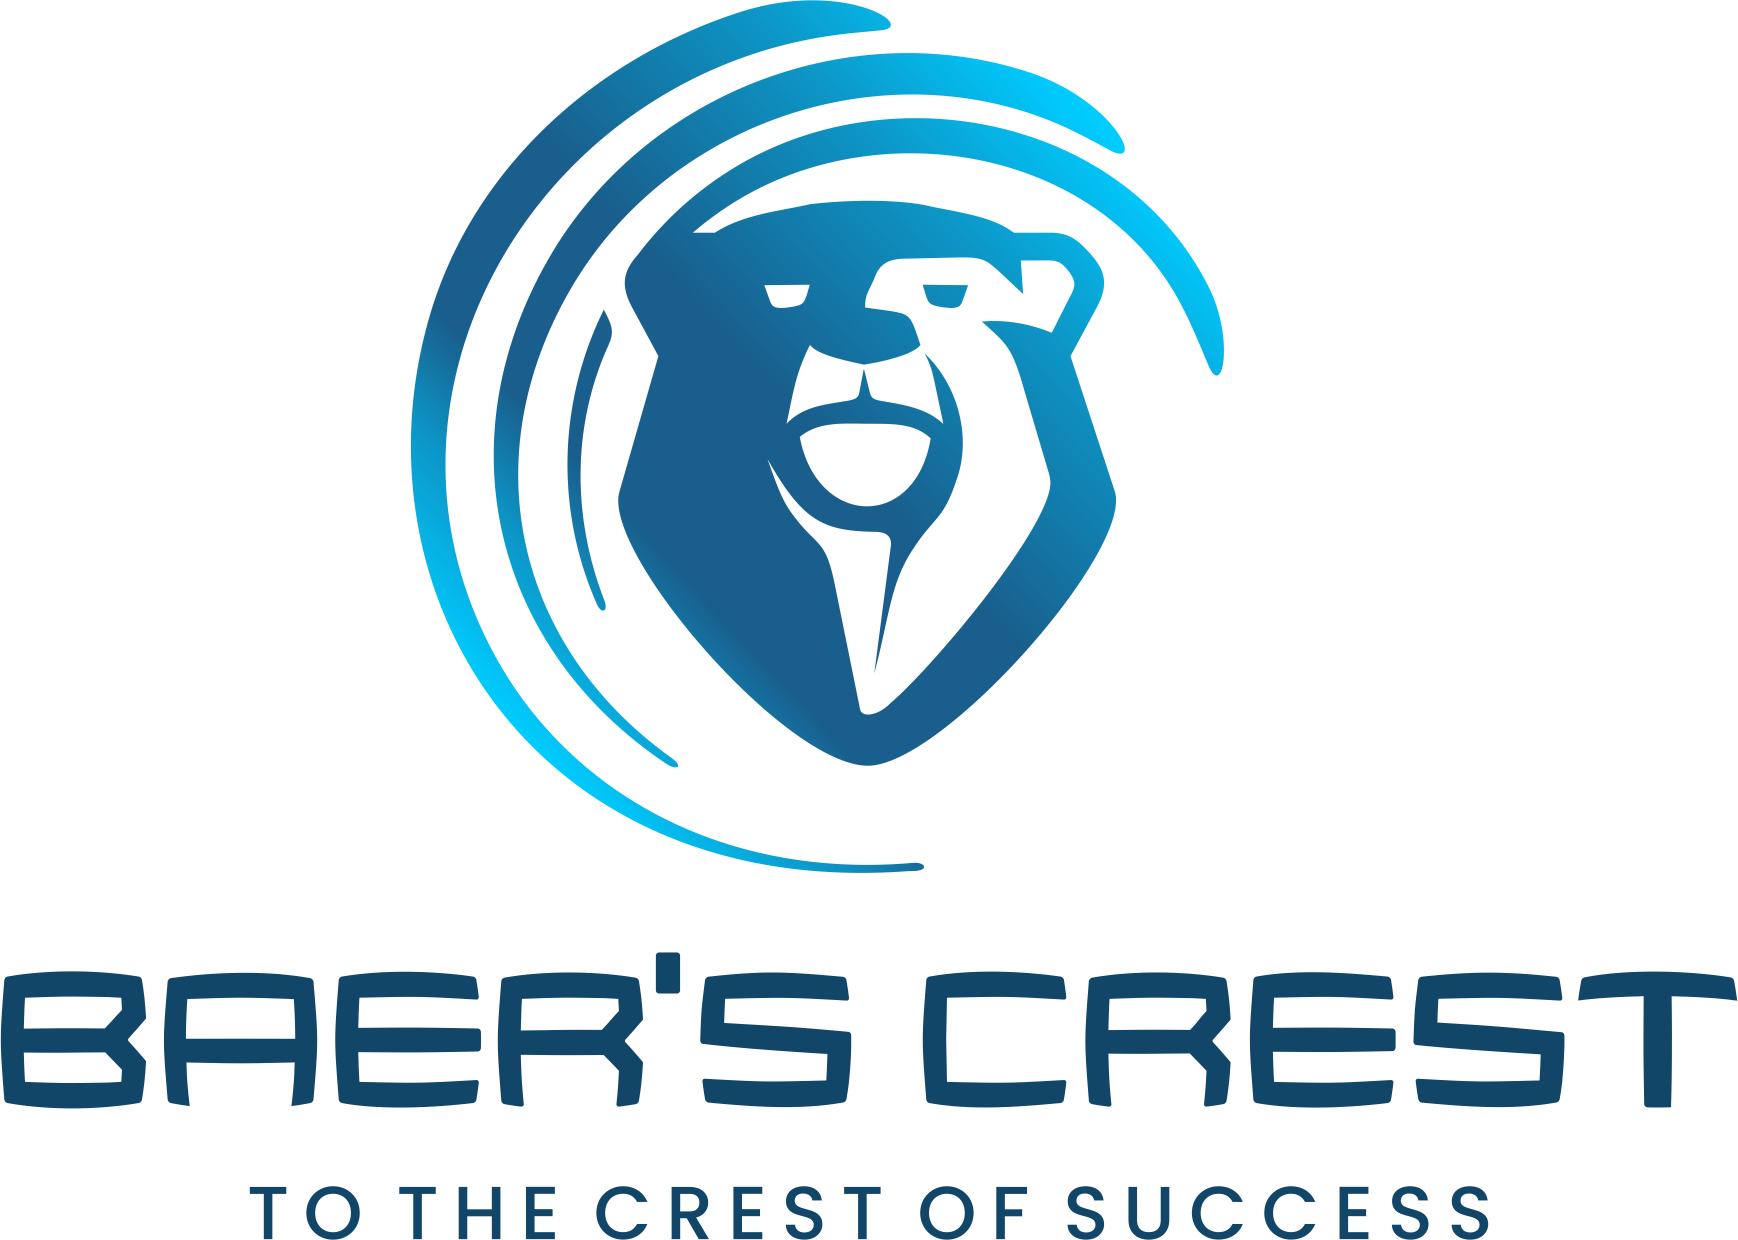 Baer's Crest | To the crest of success